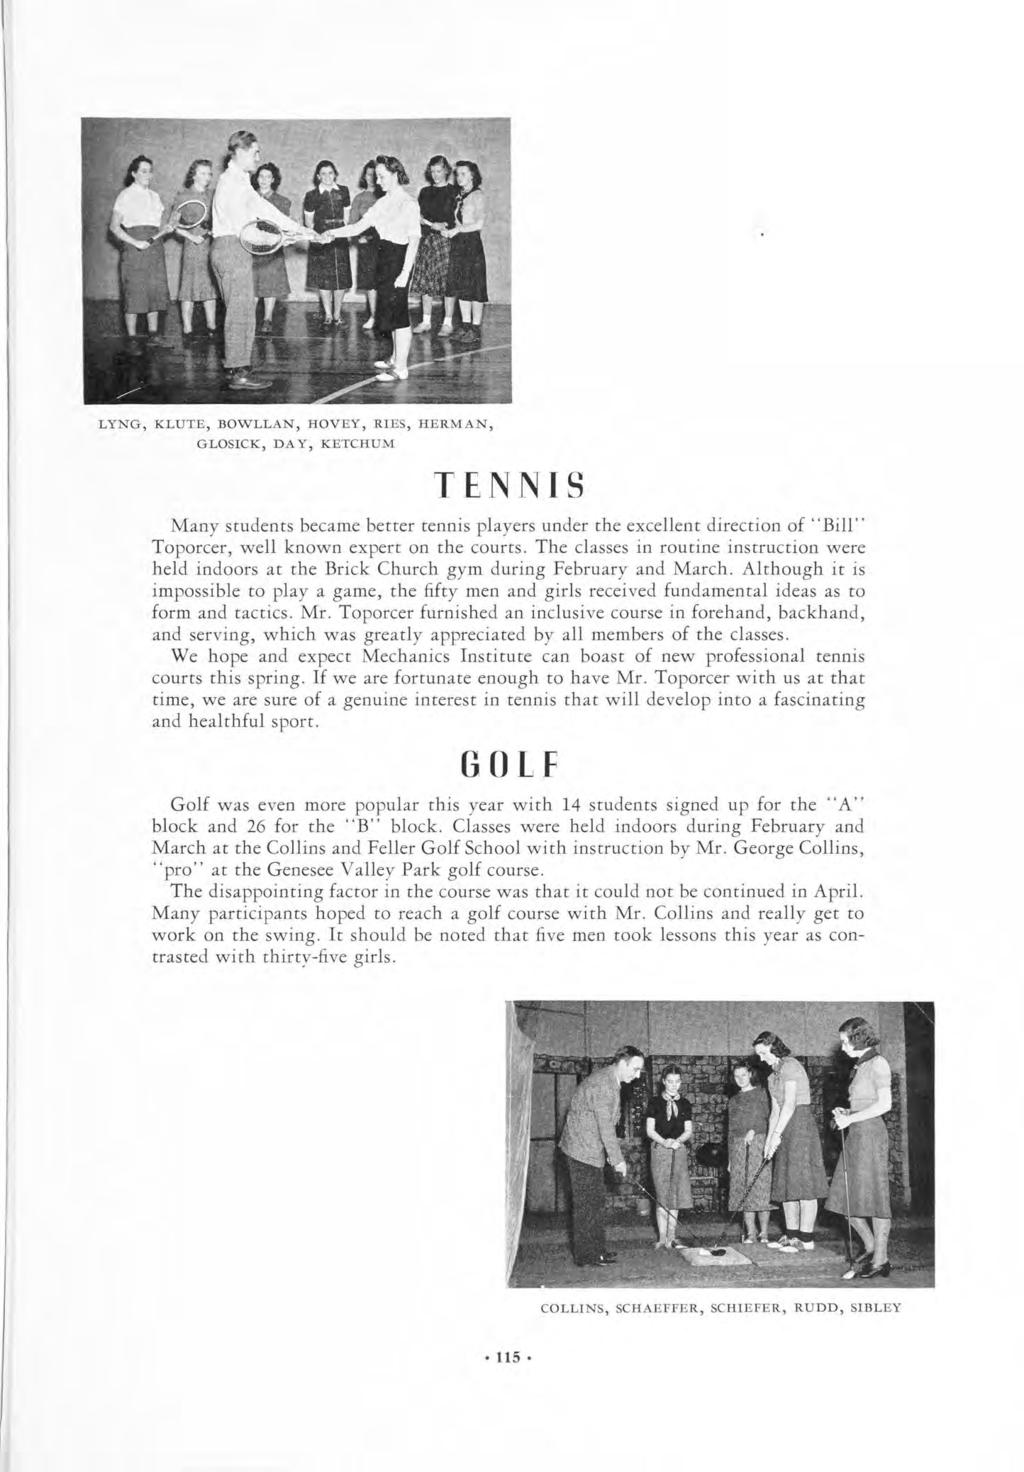 "LYNG, KLUTE, BOWLLAN, HOVEY, RIES, HERMAN, GLOSICK, DA Y, KETCHUM TENNIS Many students became better tennis players under the excellent direction of ""Bill"" Toporcer, well known on expert the courts."